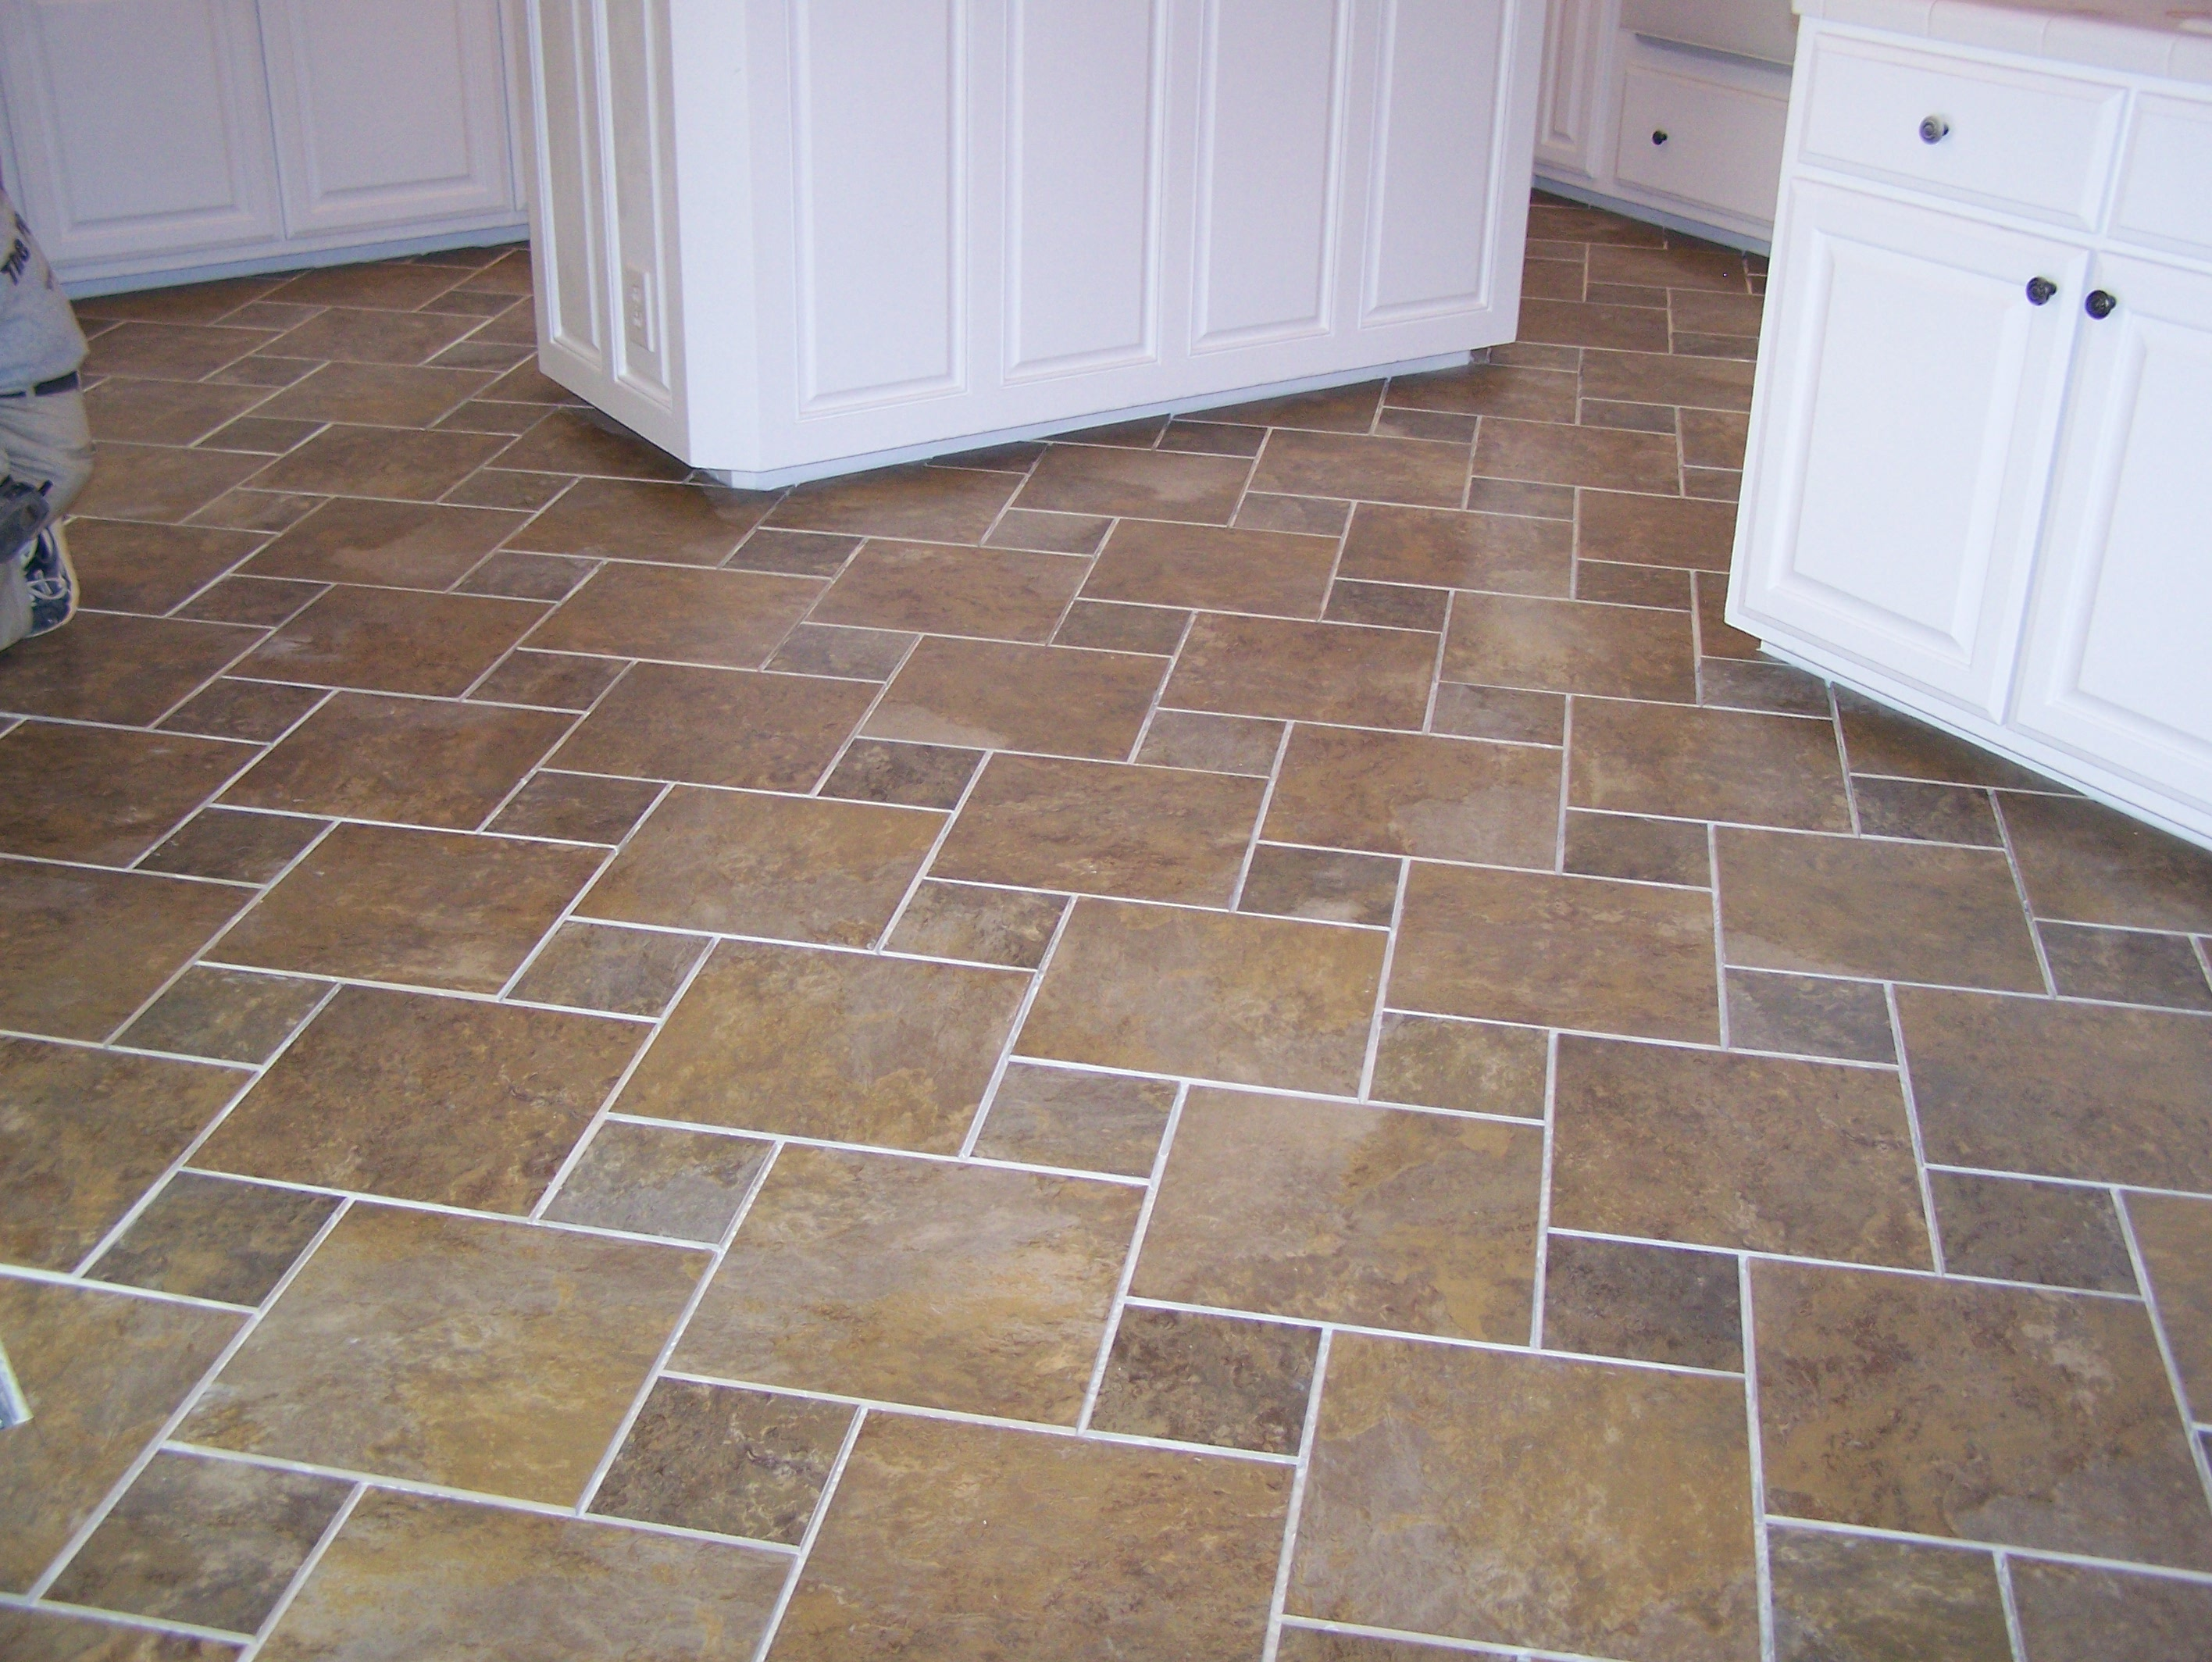 ceramic tile flooring ceramic tile floor designs EBLRPNB